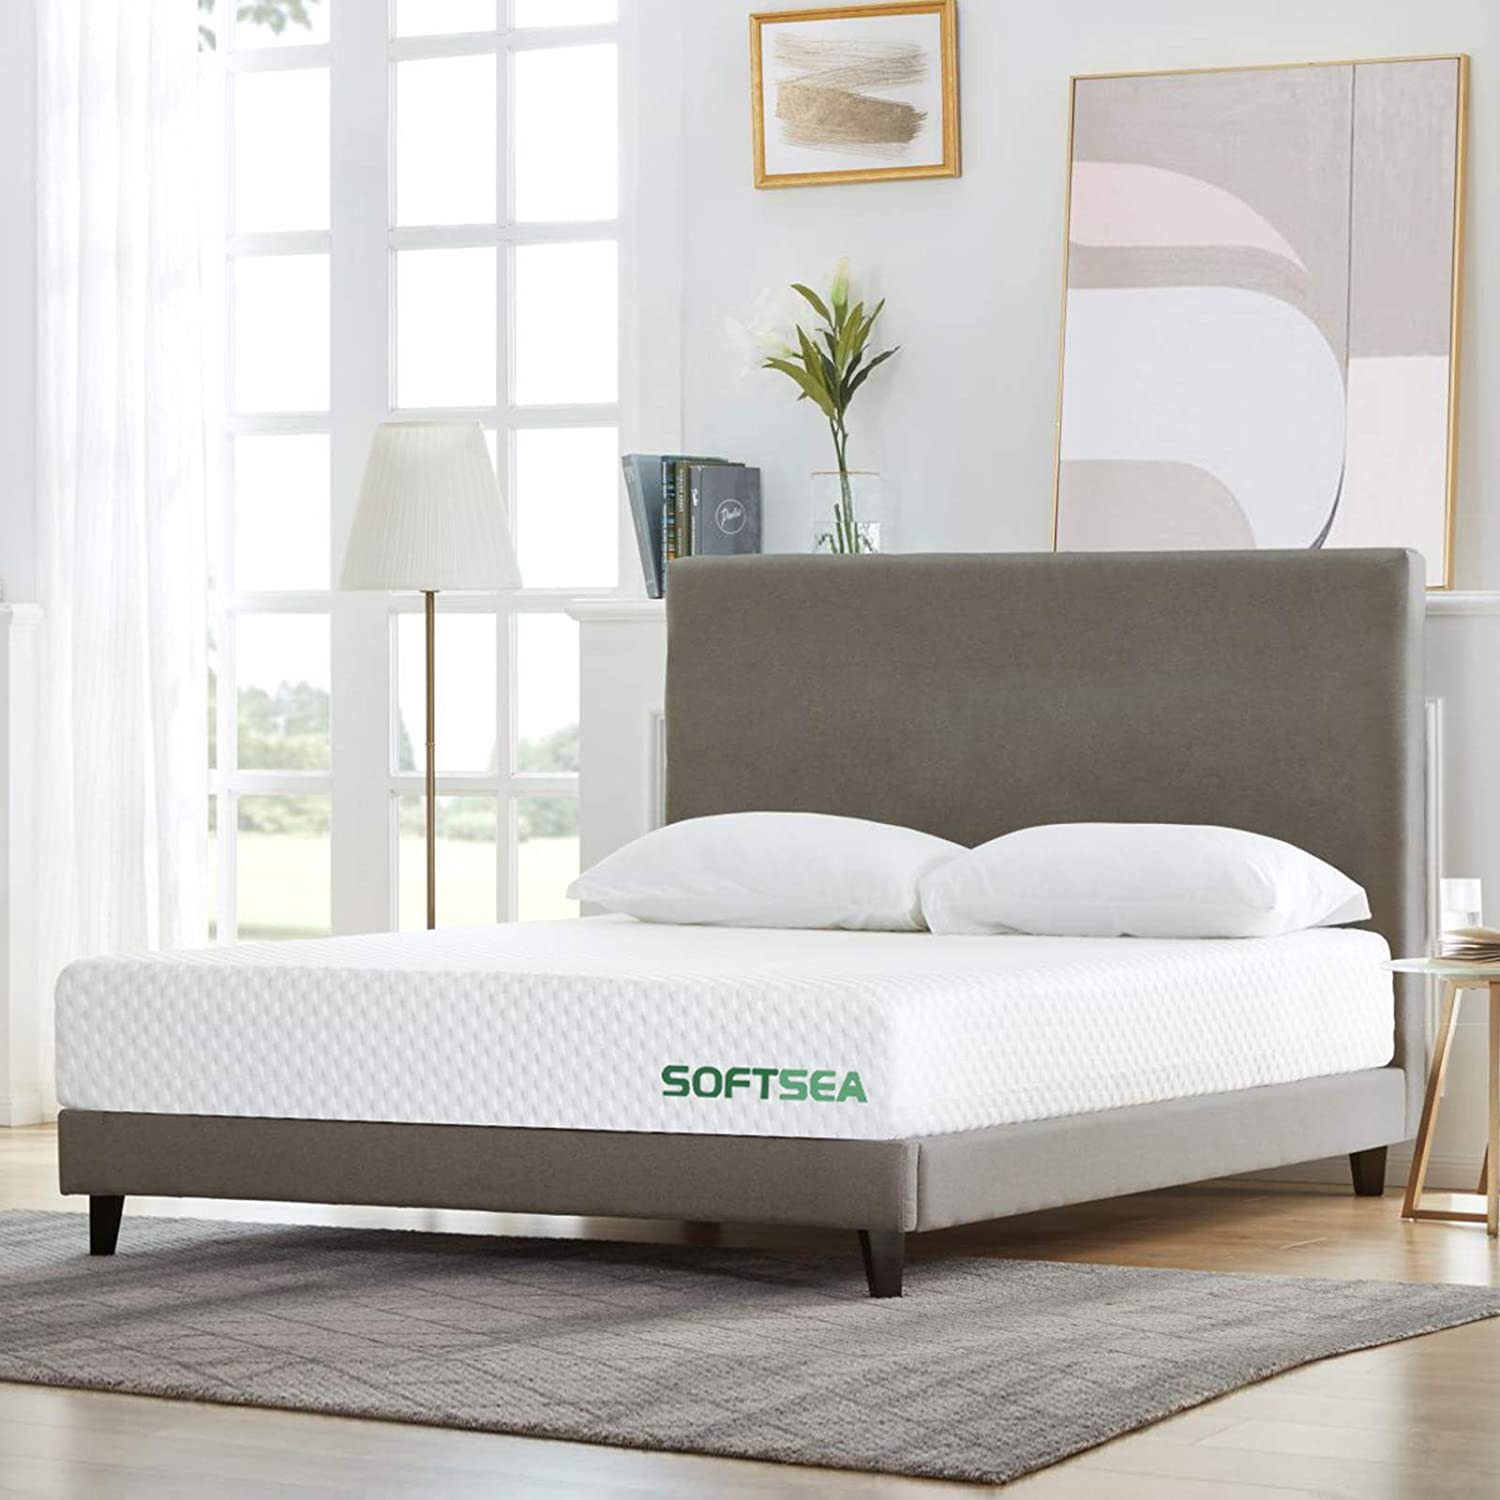 Twin Size Mattress, SOFTSEA 8 inch Cooling-Gel Memory Foam Mattress in a Box for a Medium Comfort, Breathable Bed Mattress with CertiPUR-US Certified Foam, No Set-up, Easy Assembly, 10 Year Warranty